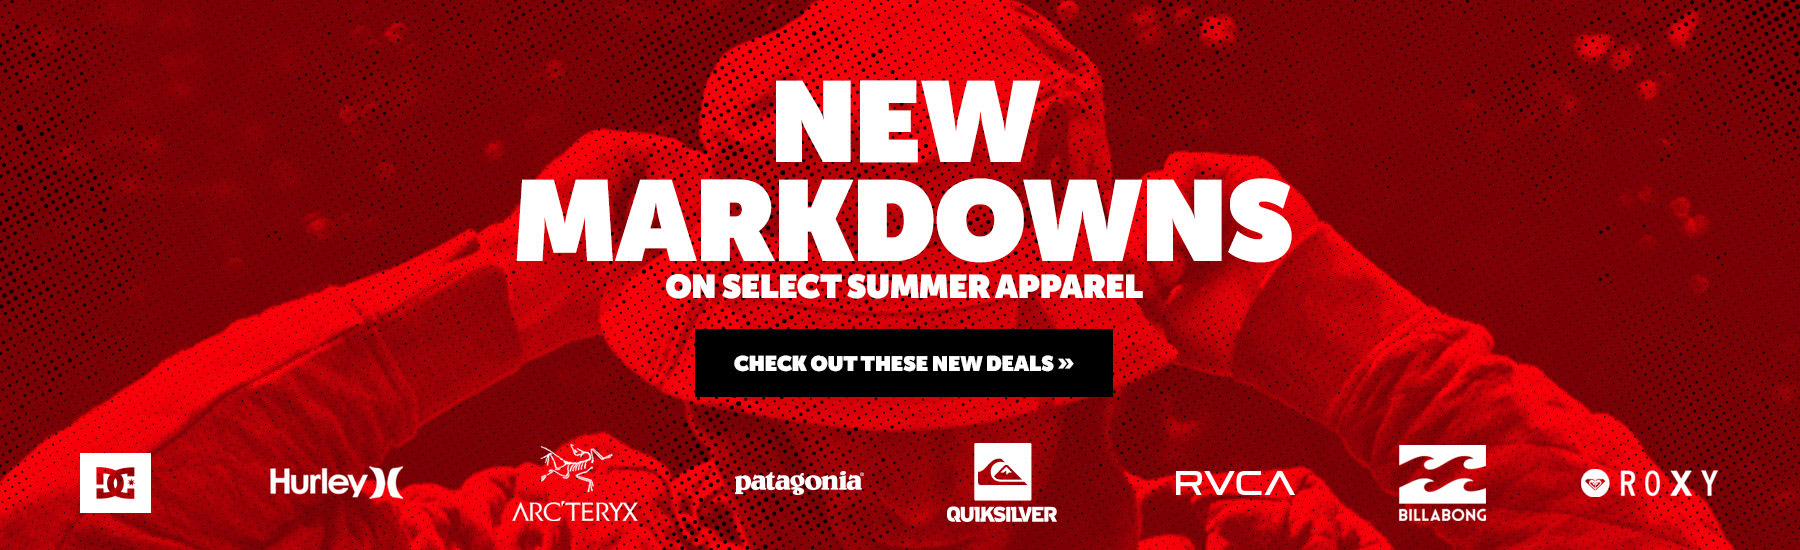 Shop August Markdowns